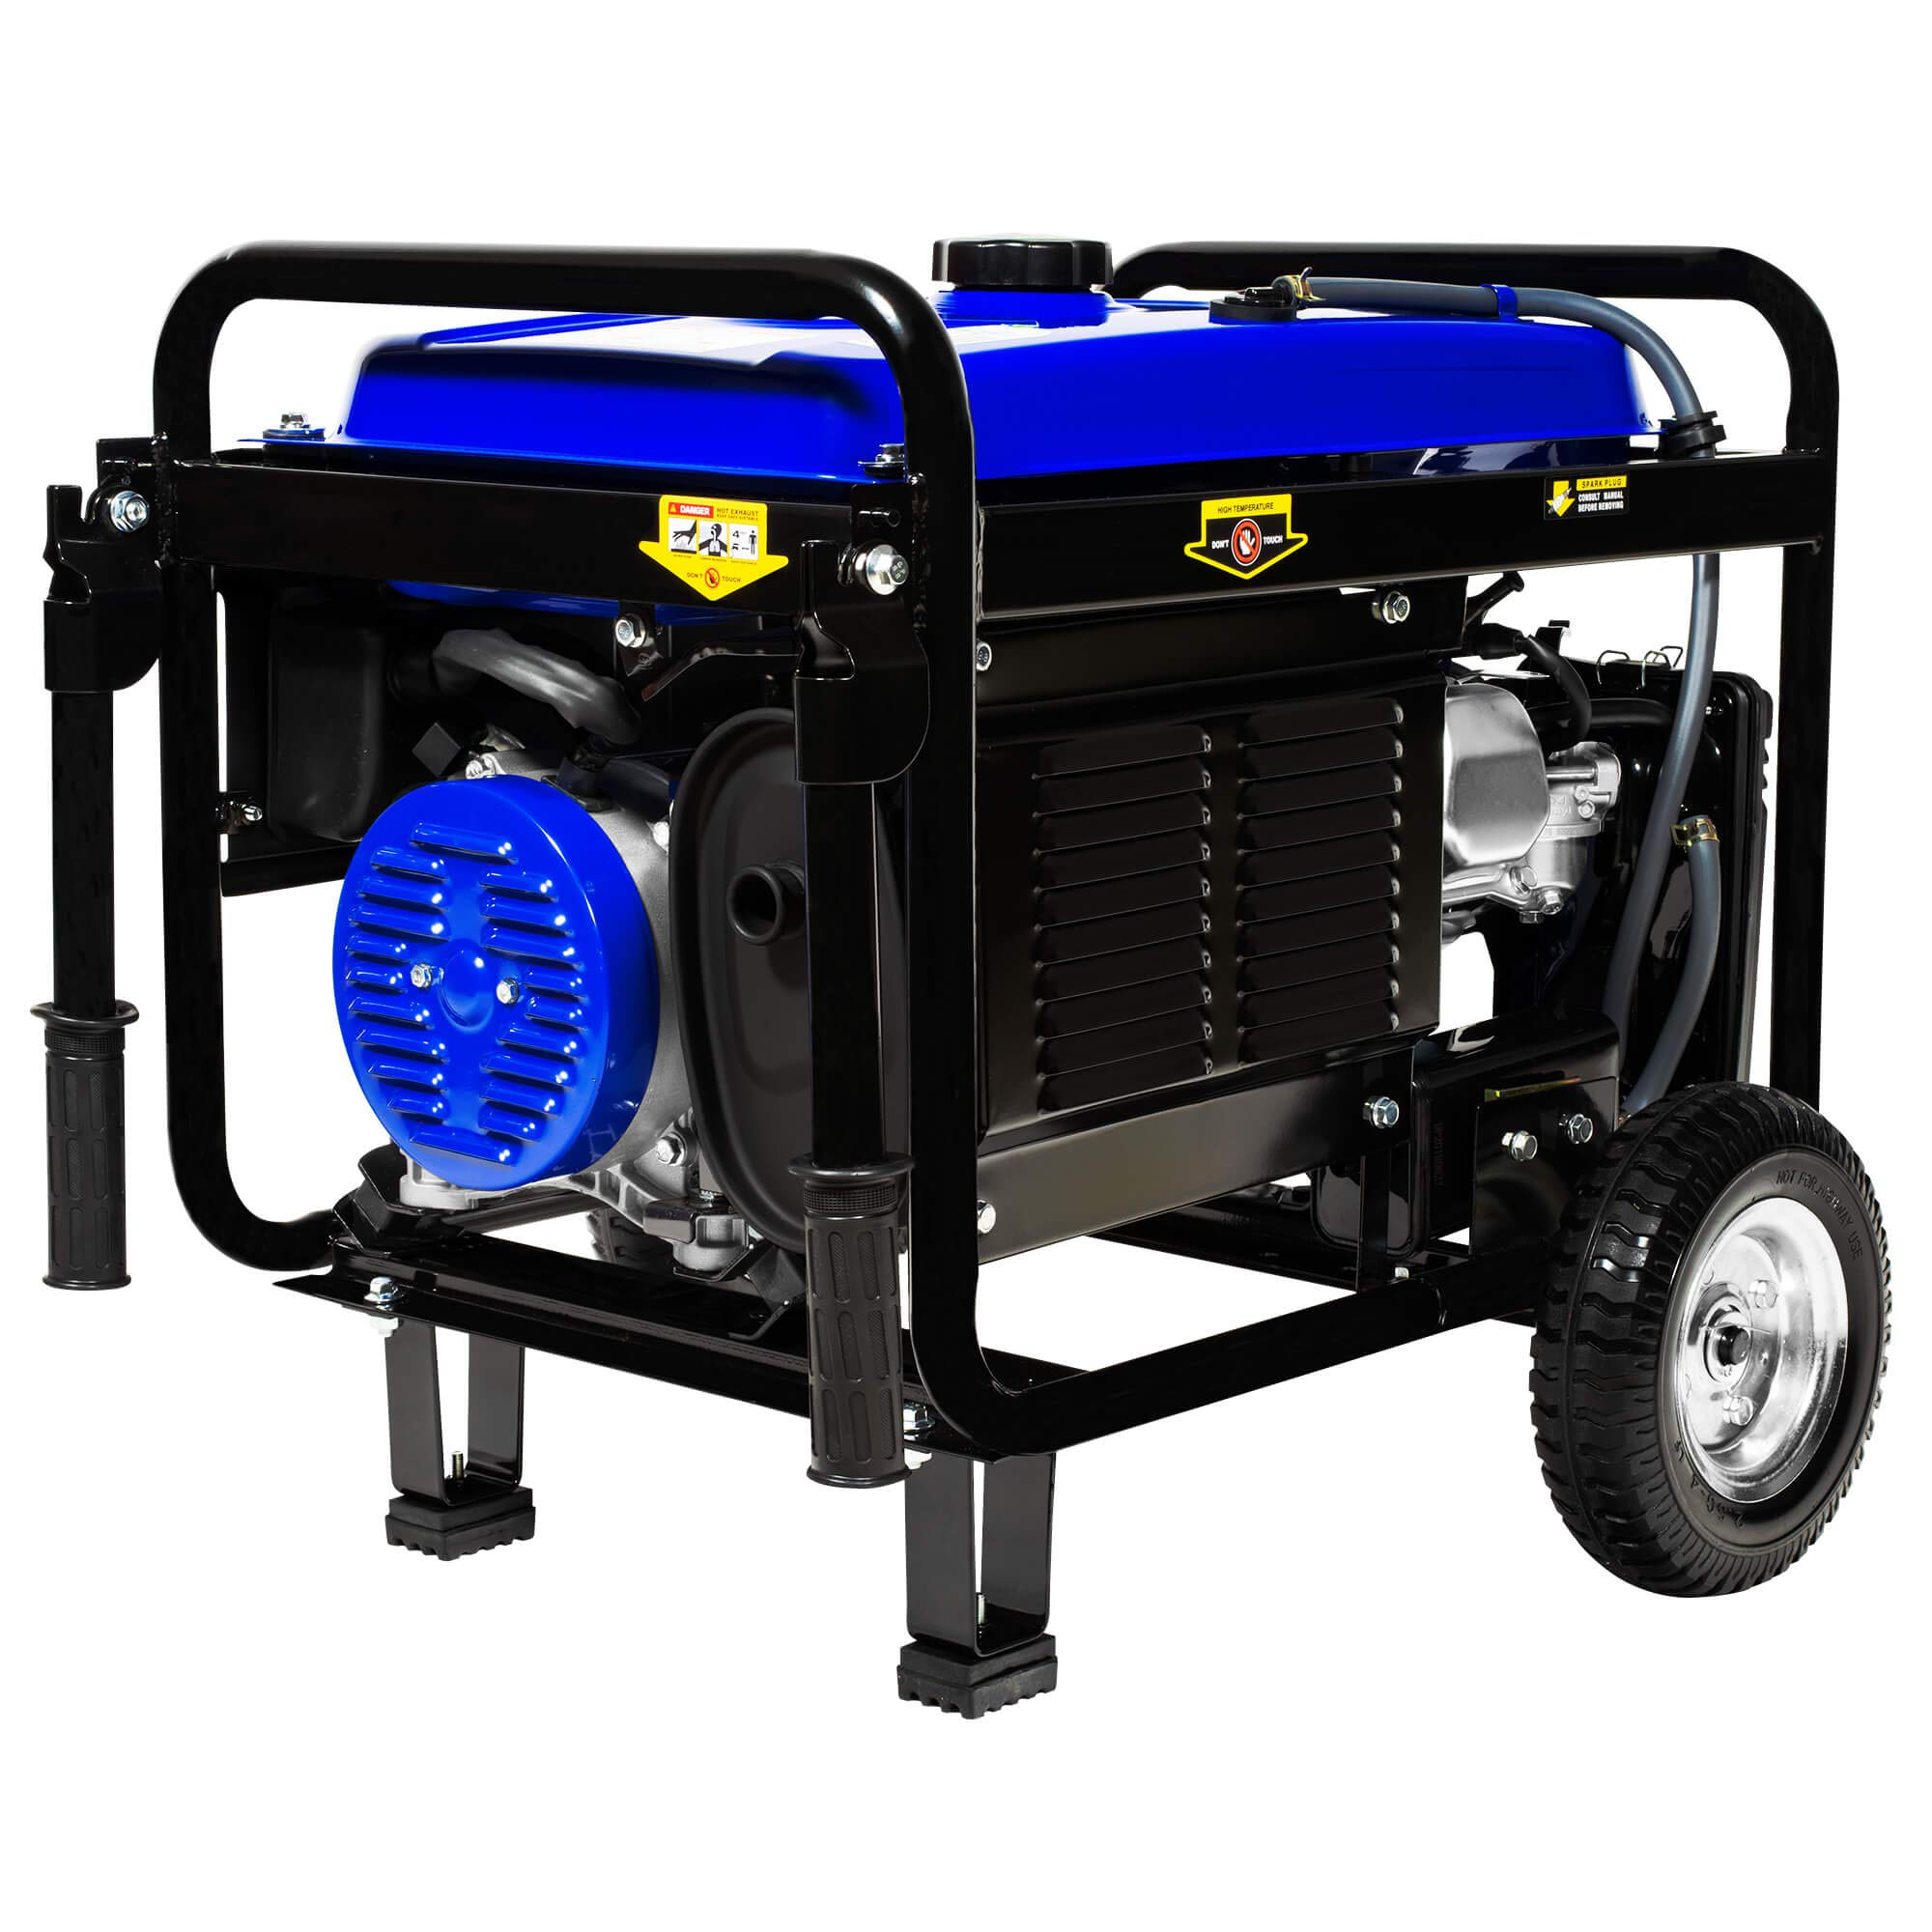 DuroMax XP5500EH 5,500 Watt 7.5 HP Portable Electric Start Dual Fuel Gas/Propane Generator by DuroMax (Image #9)